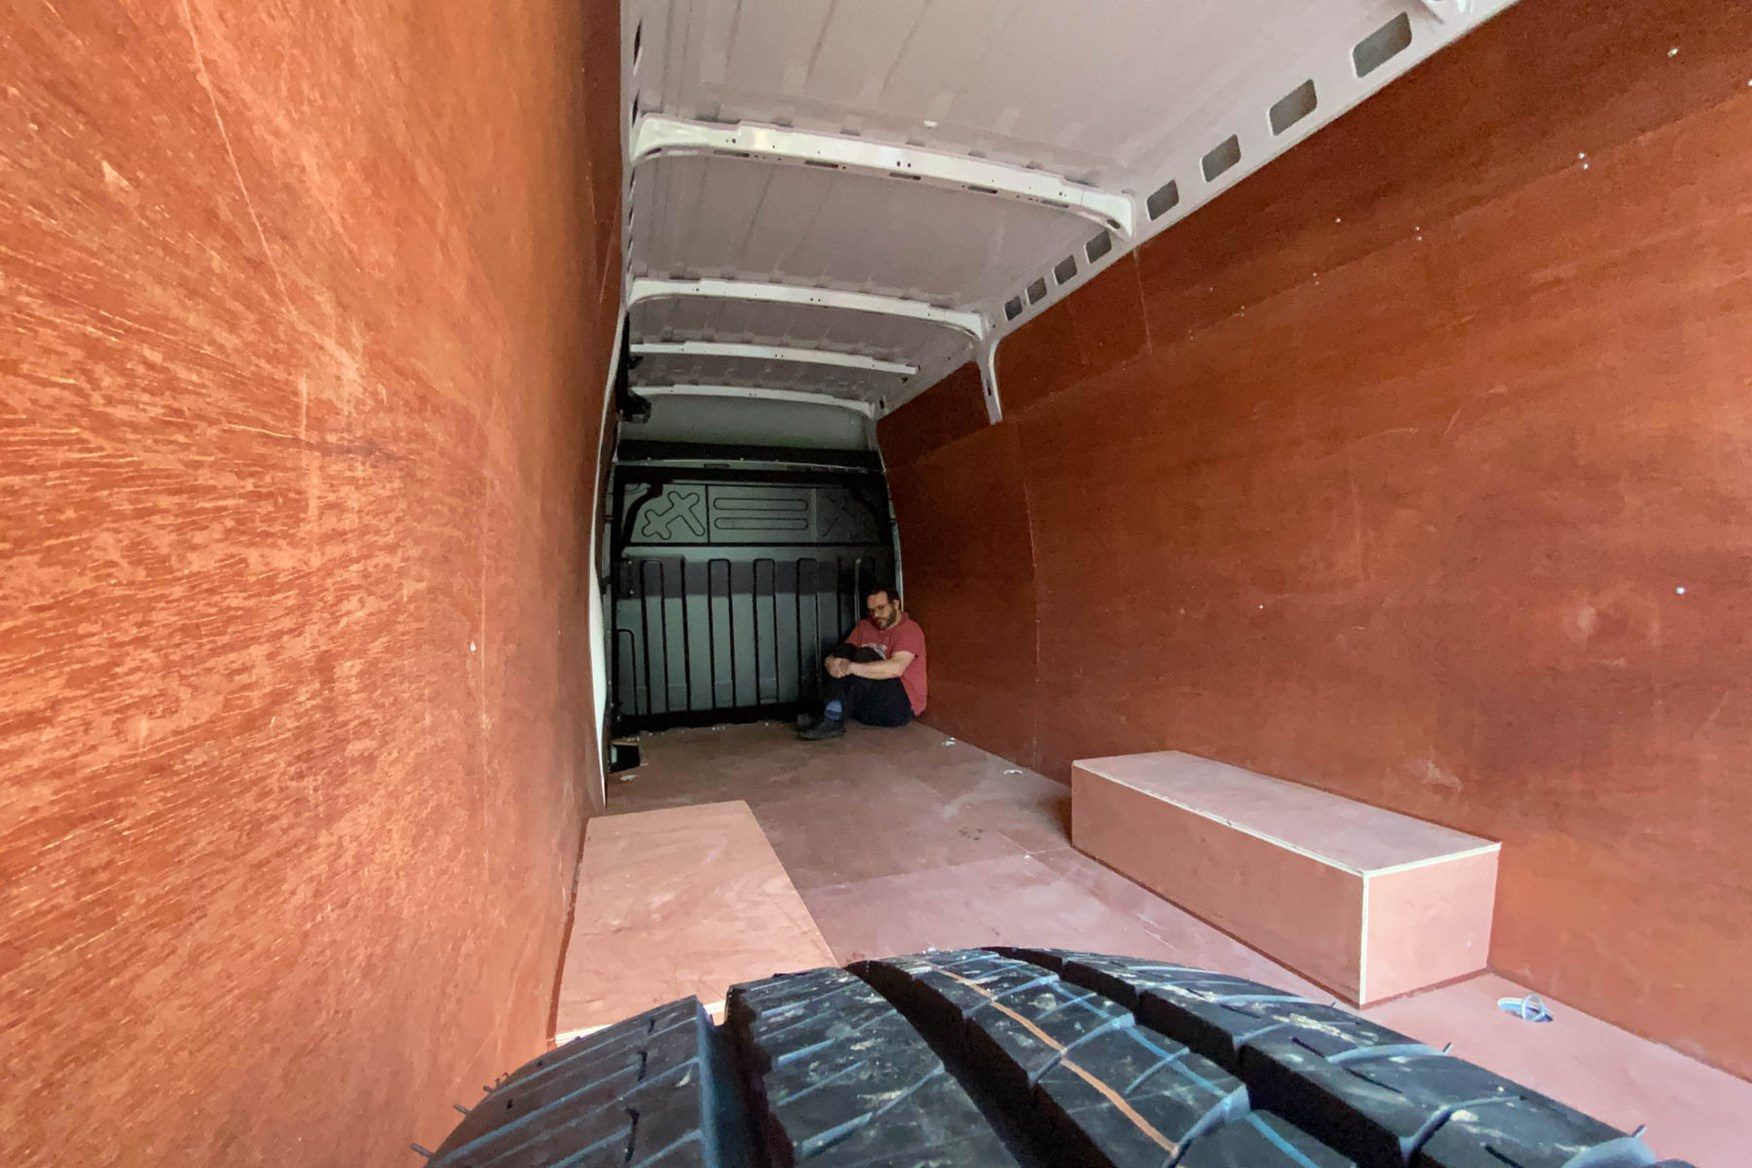 Iveco Daily 7.0t review - load space